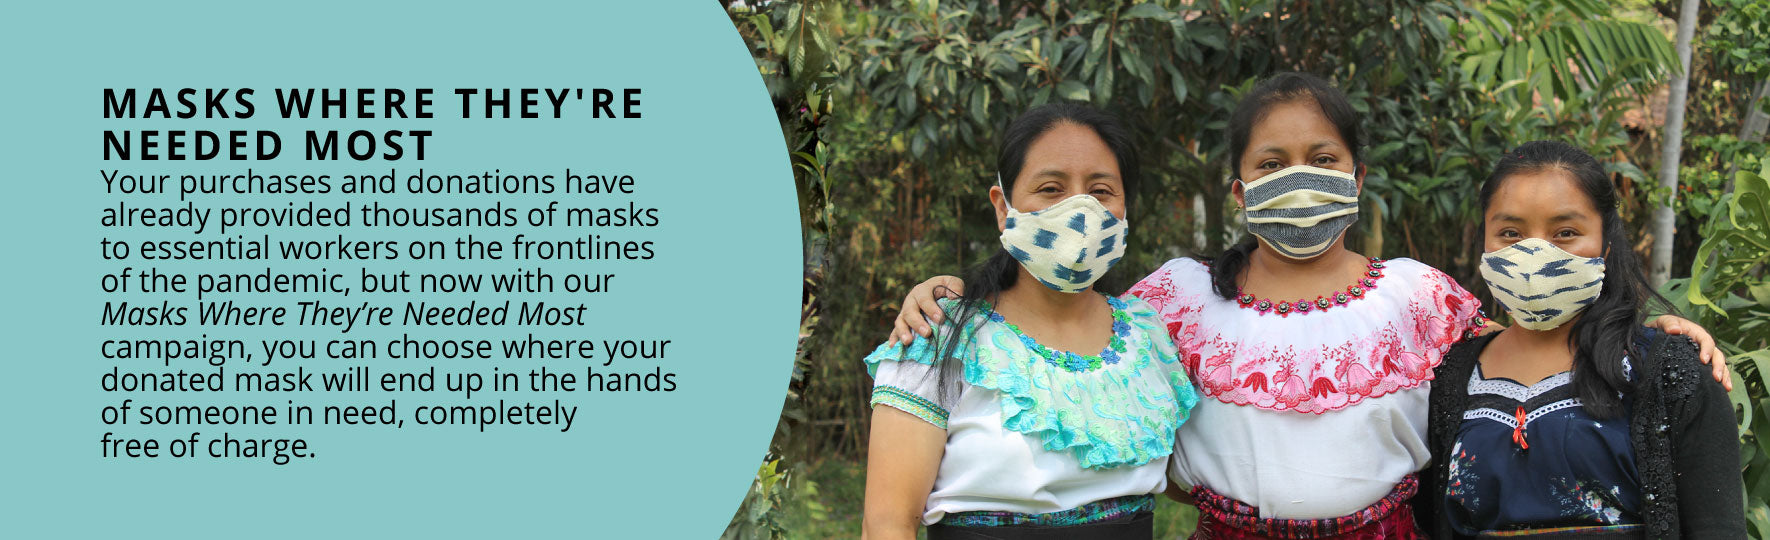 Buy Ethical Reusable Protective Masks